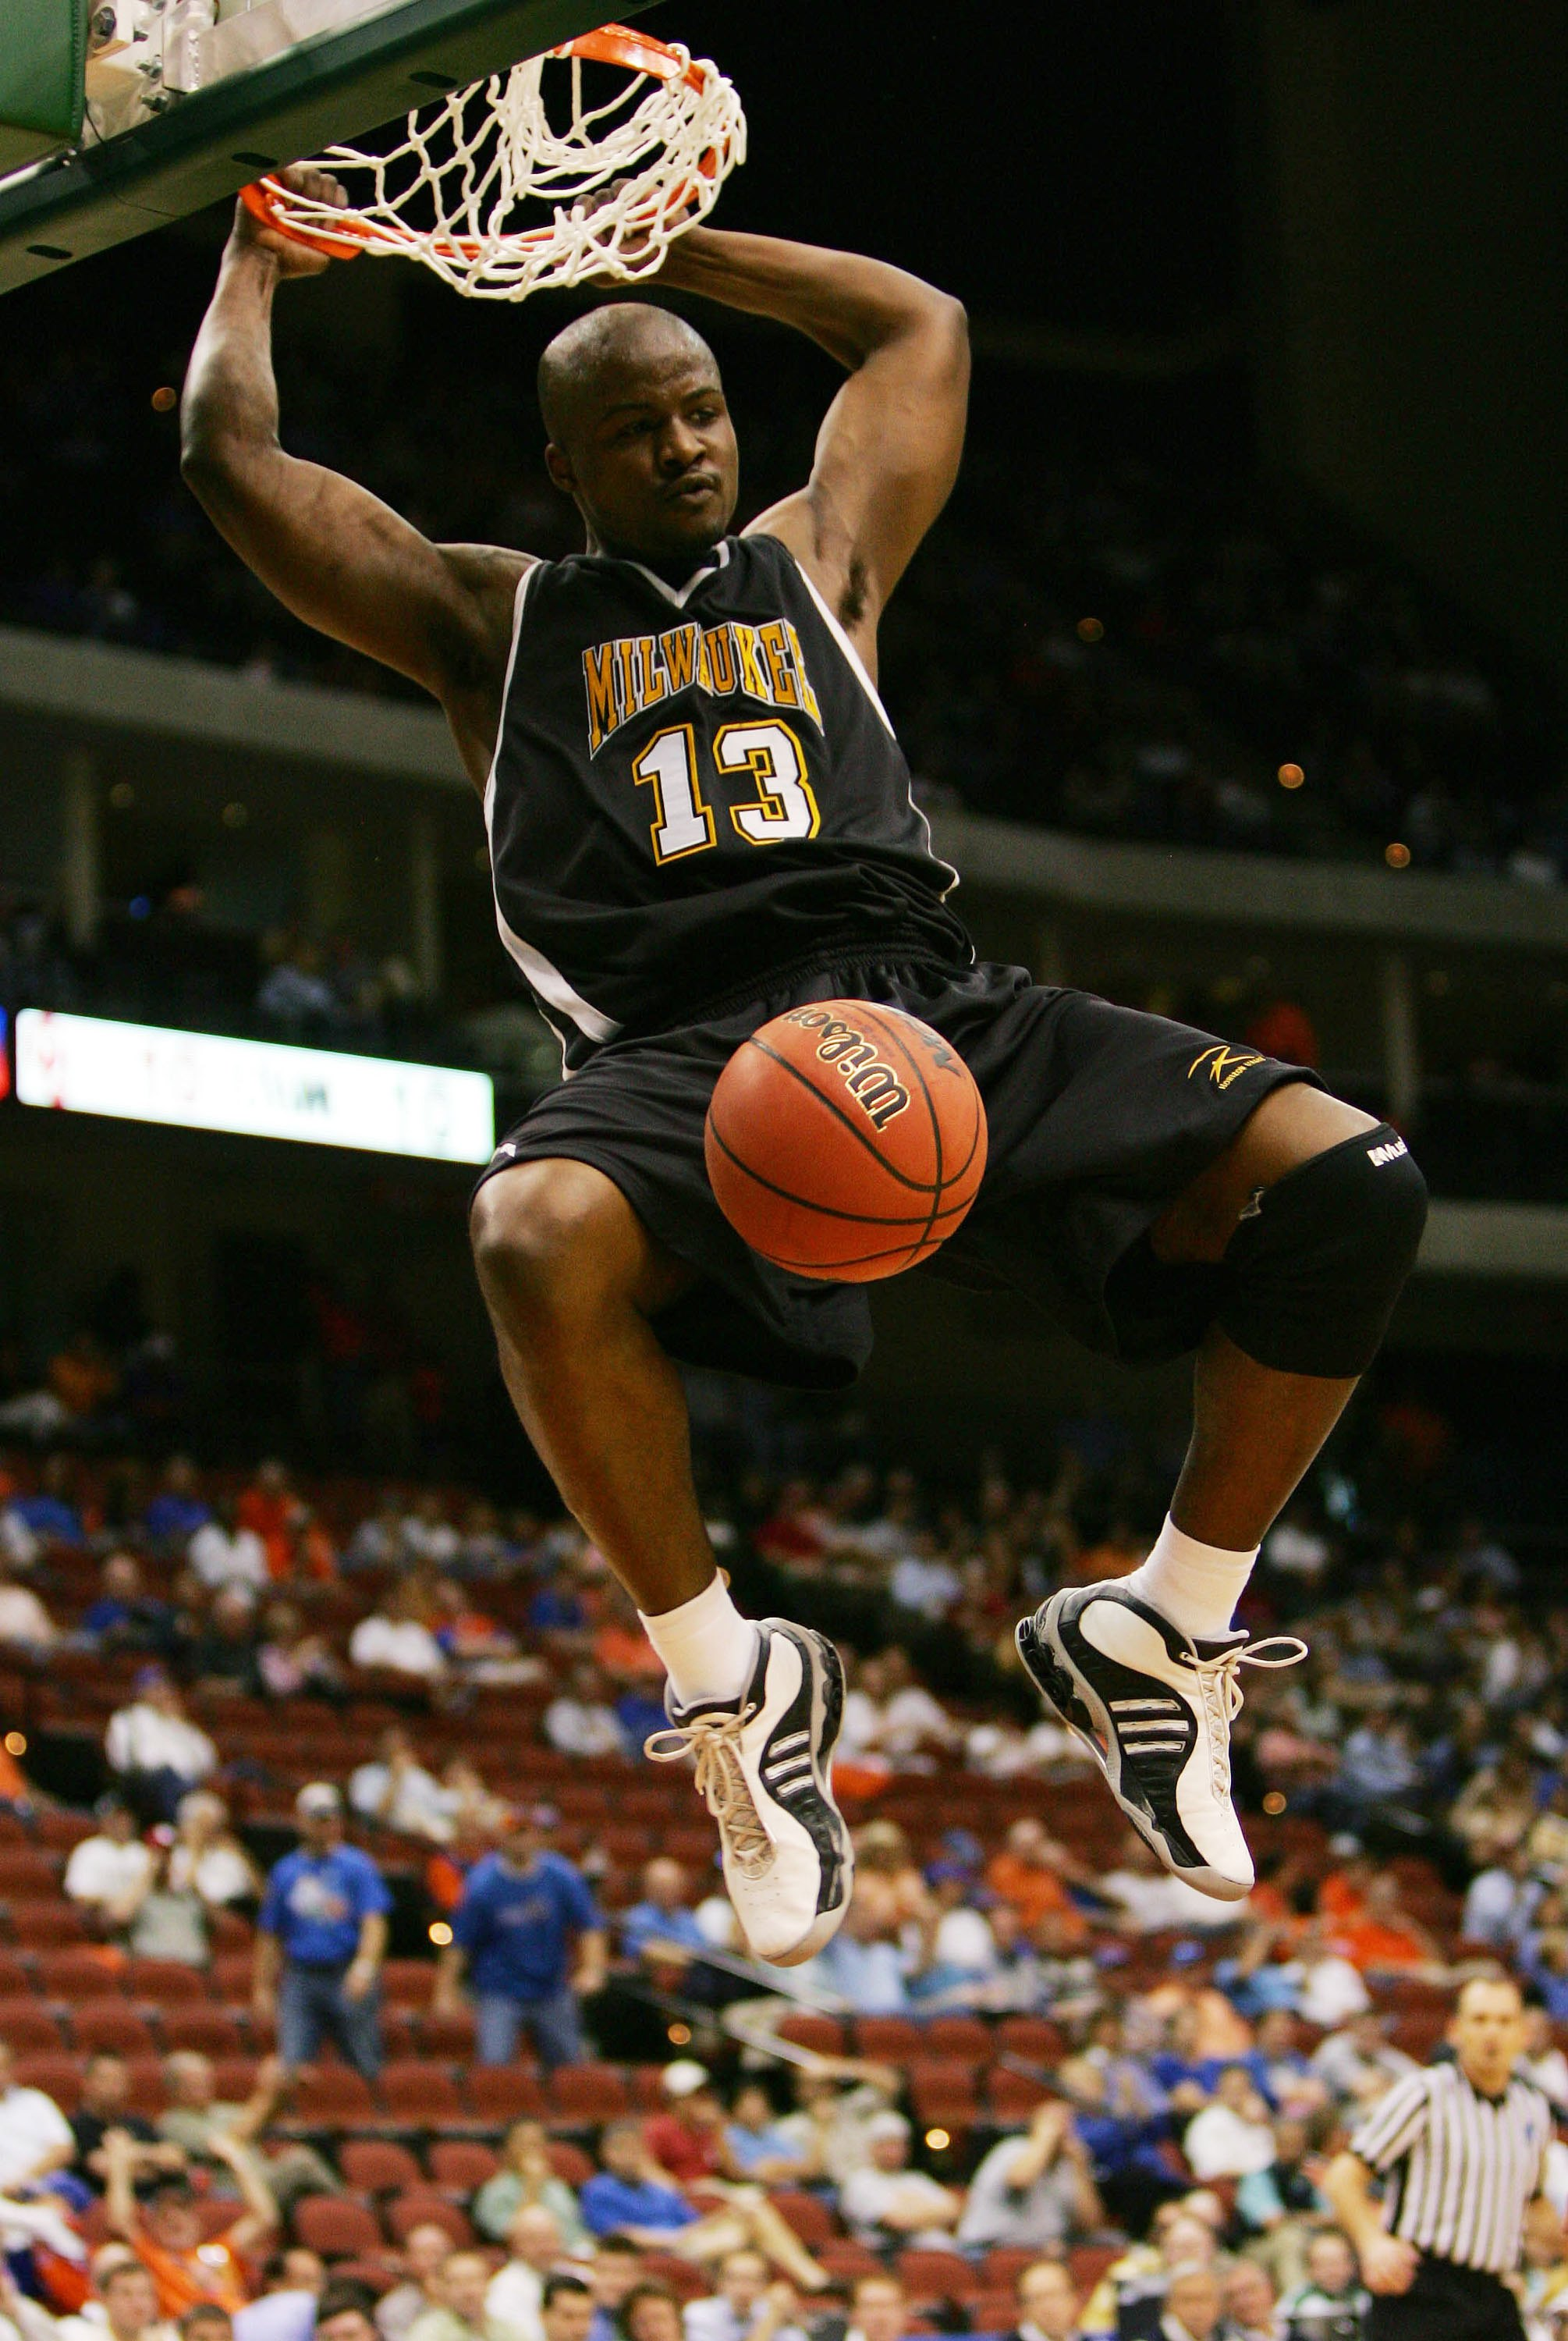 JACKSONVILLE, FL - MARCH 16:  Joah Tucker #13 of the University of Wisconsin-Milwaukee Panthers dunks against the Oklahoma University Sooners during round one of the NCAA National Championship on March 16, 2006 at the Veterans Memorial Arena in Jacksonvil